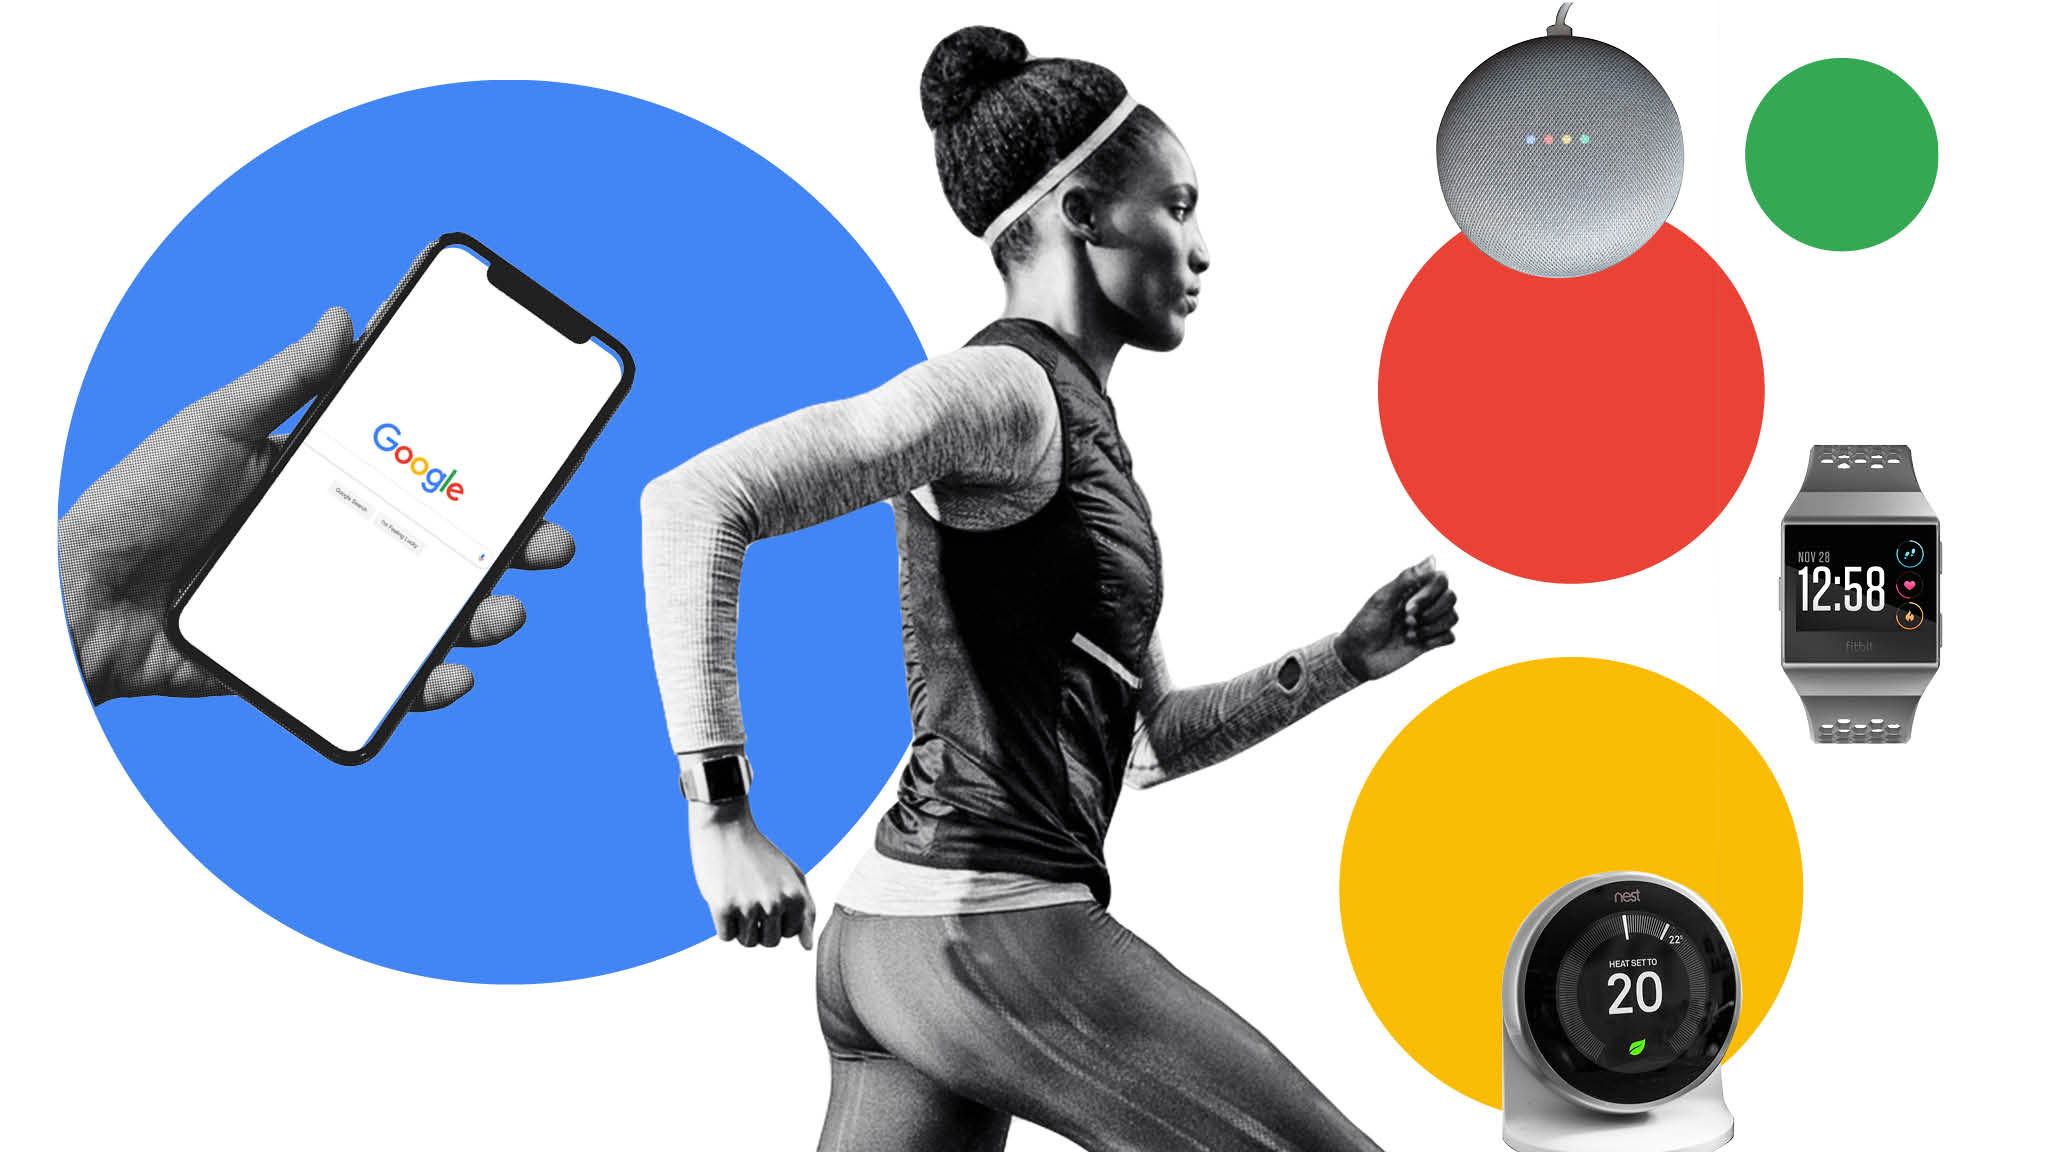 Can we ever trust Google with our health data?